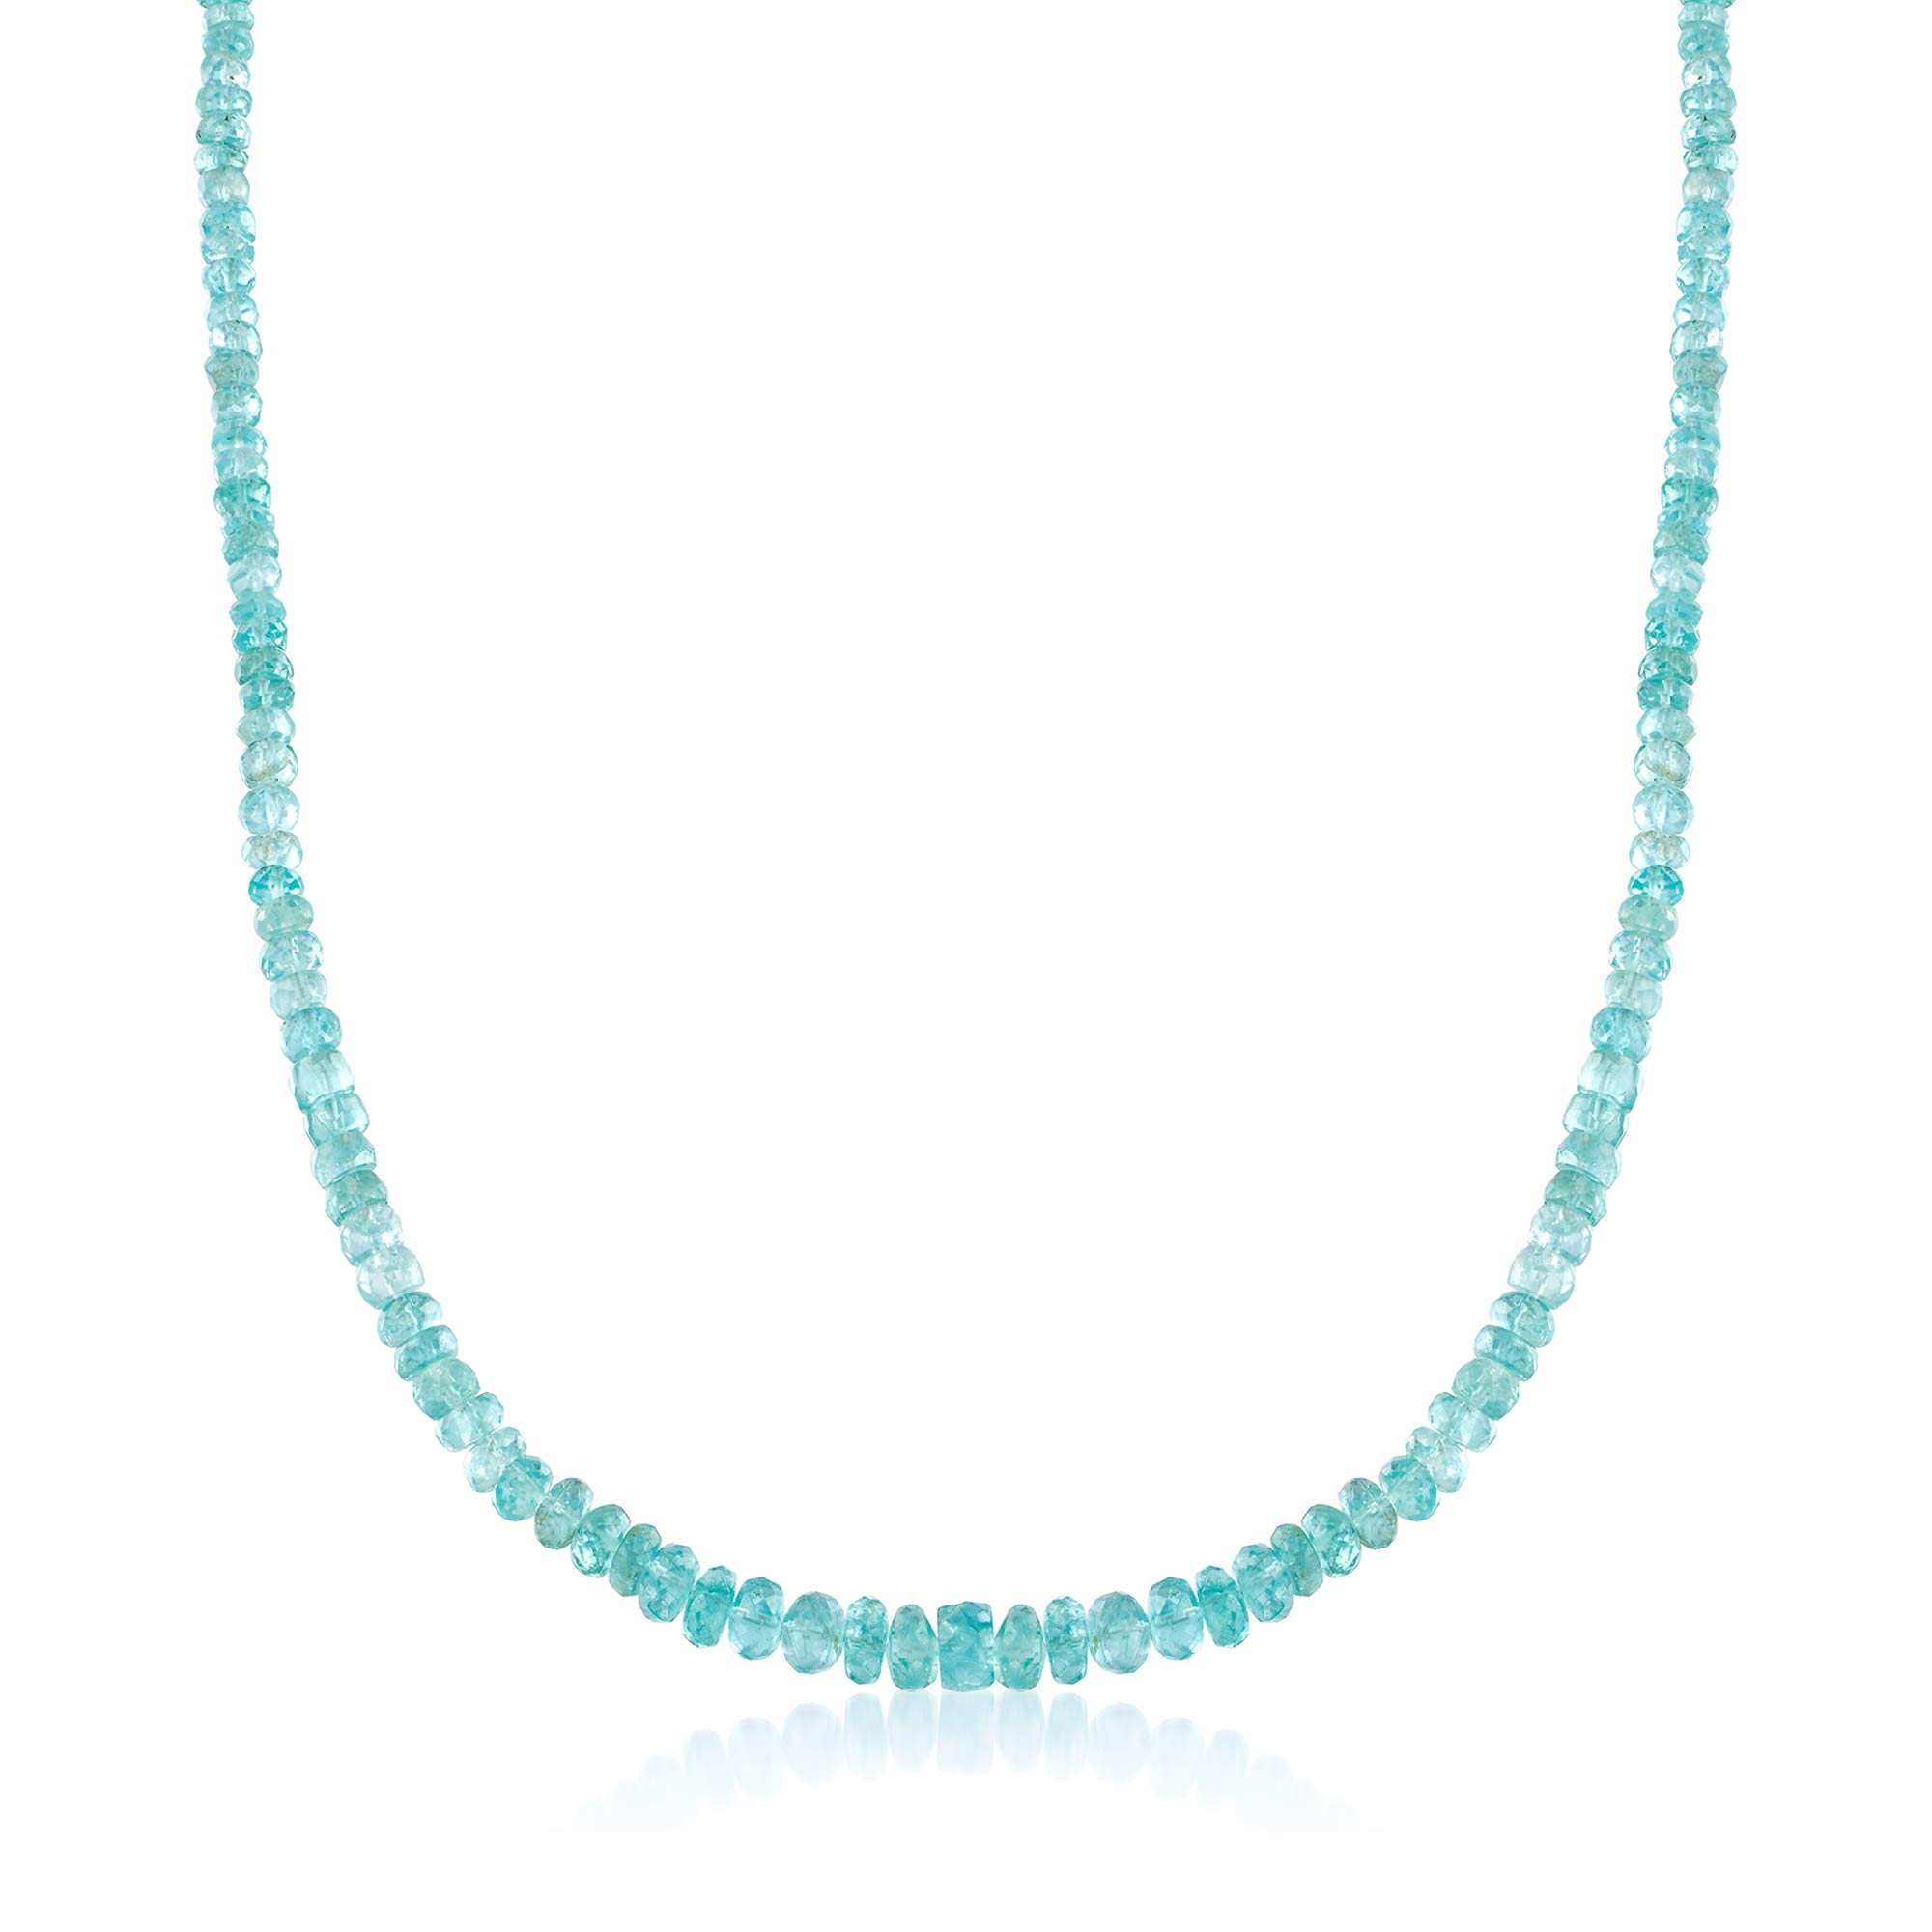 Ross-Simons 95.00 ct. t.w. Teal Apatite Bead Necklace With Sterling Silver